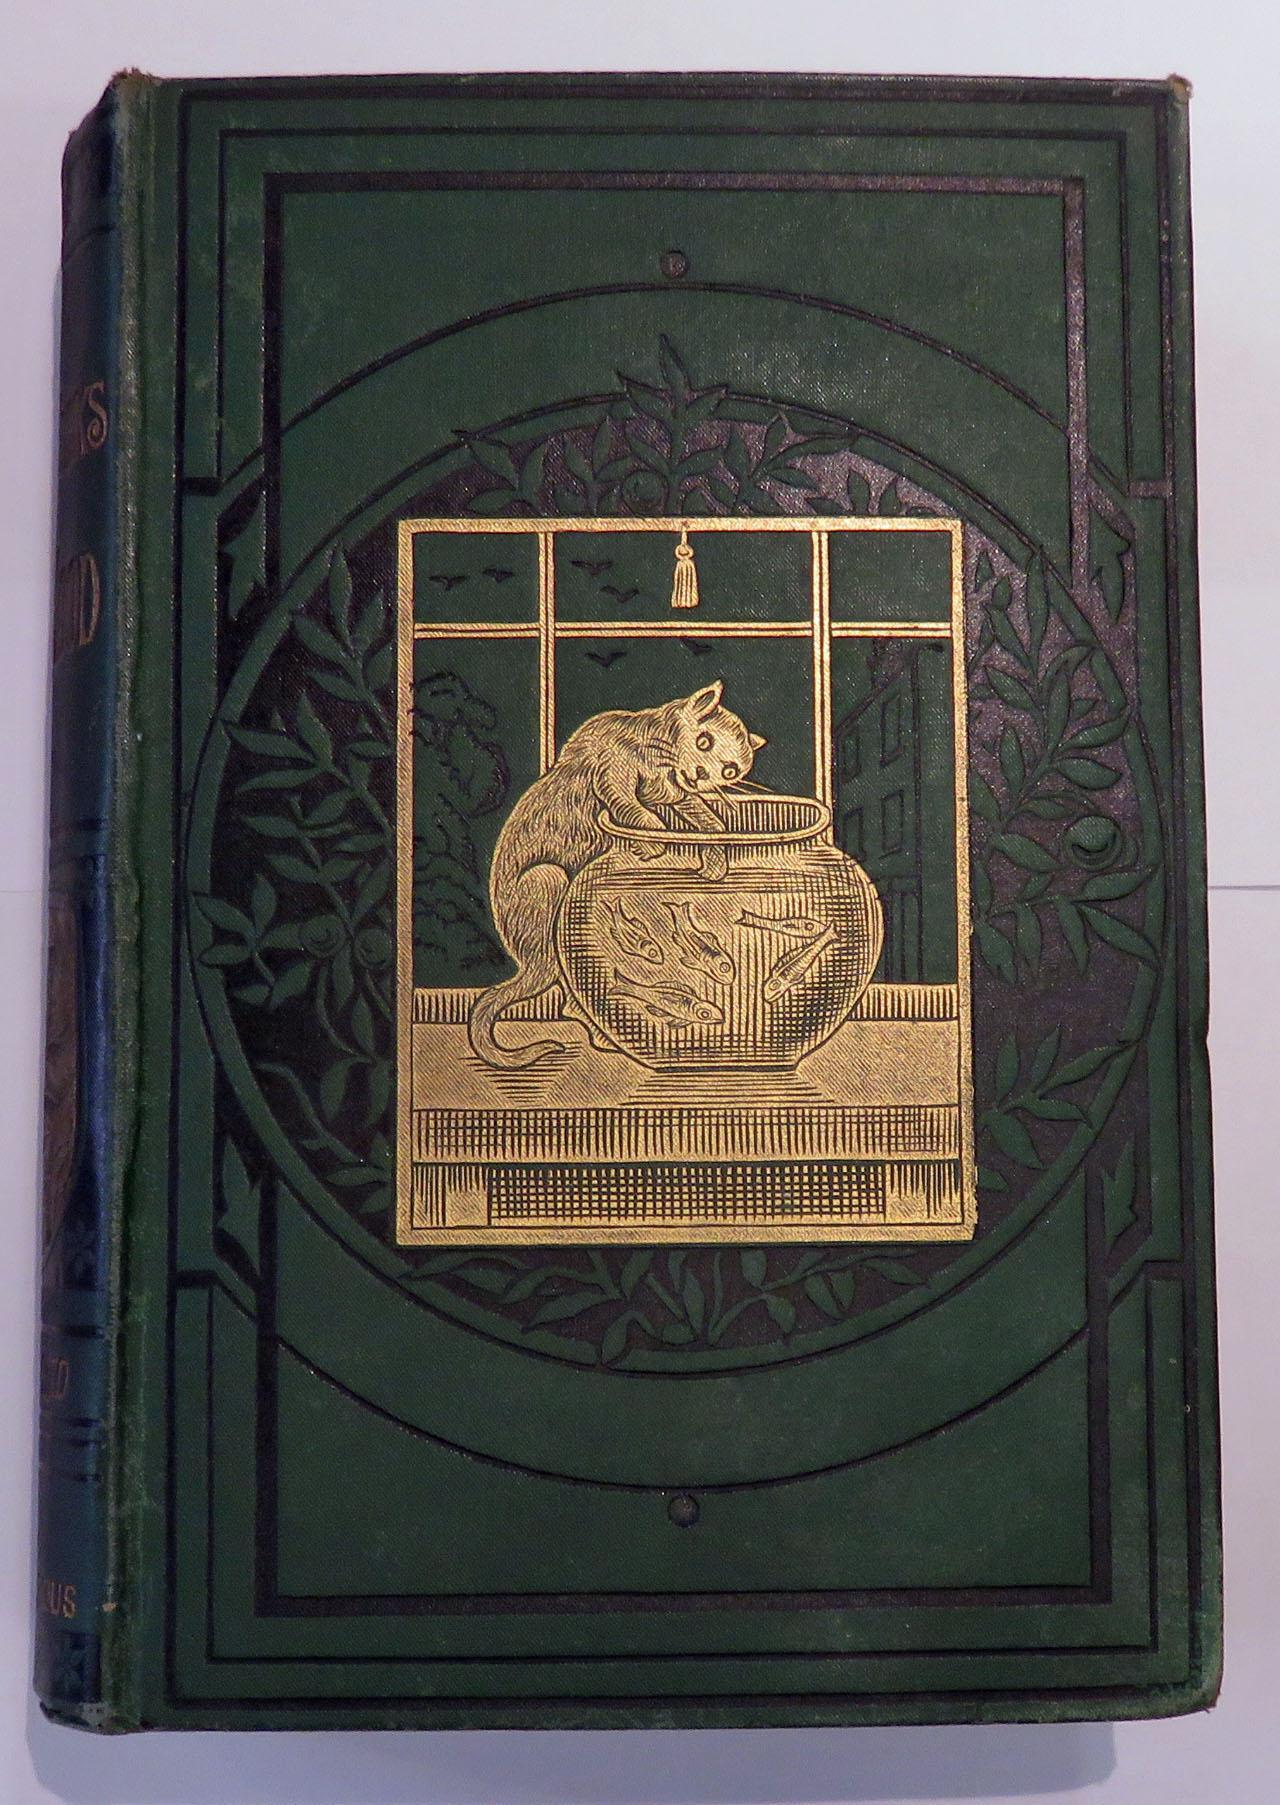 The Choice Works of Thomas Hood In Prose and Verse